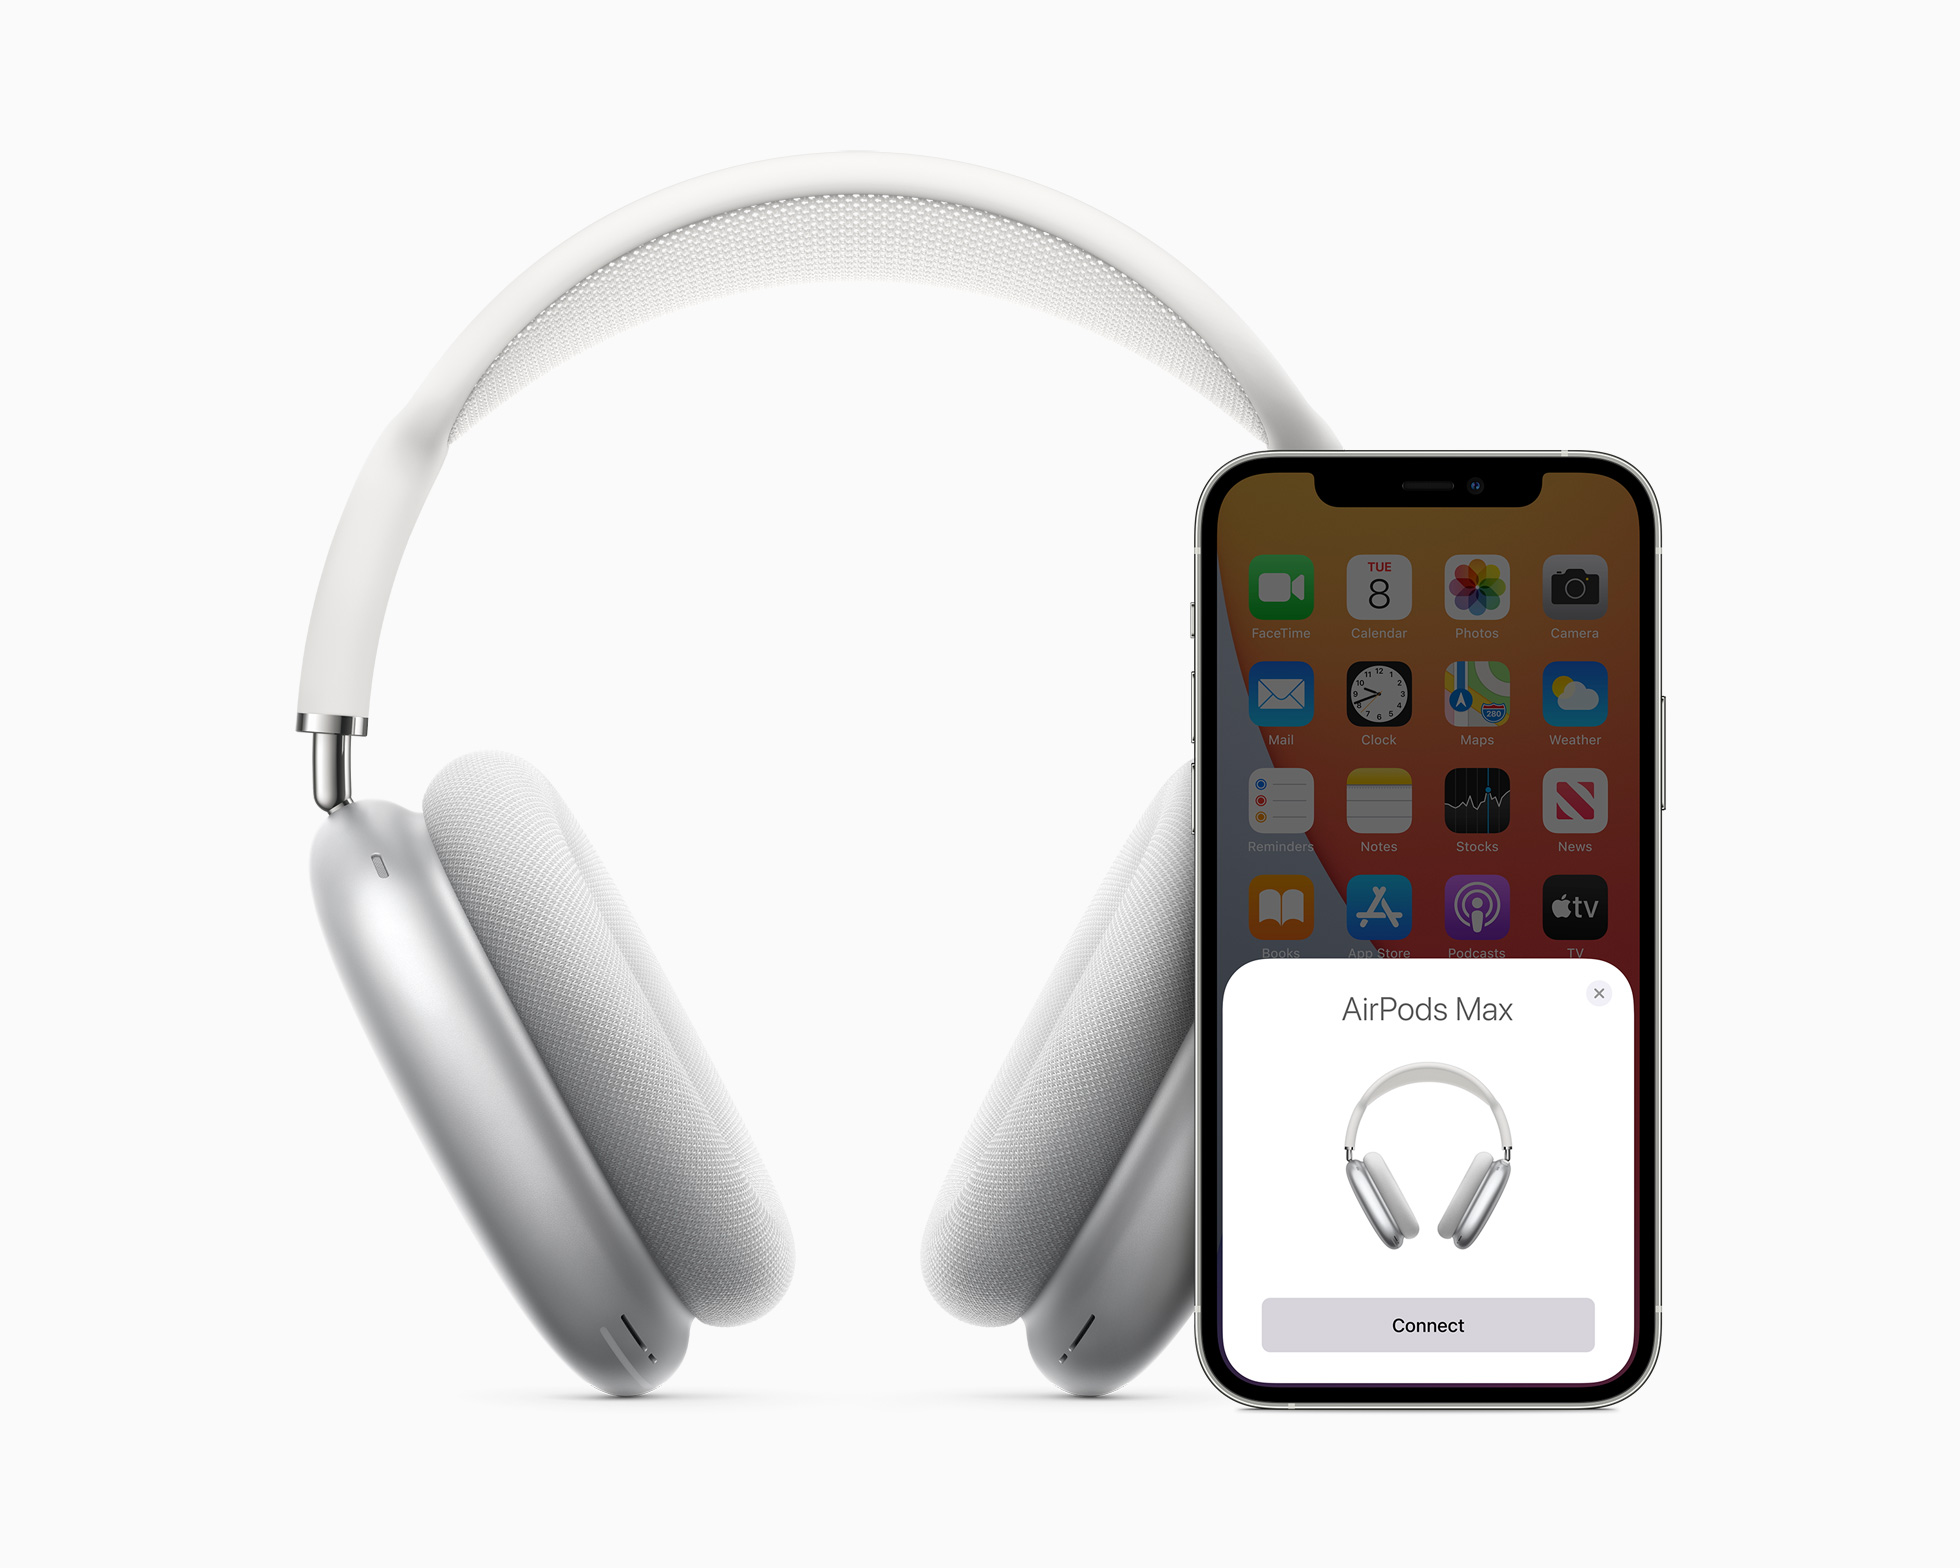 tai-nghe-apple-airpods-max-tnt-audio-2